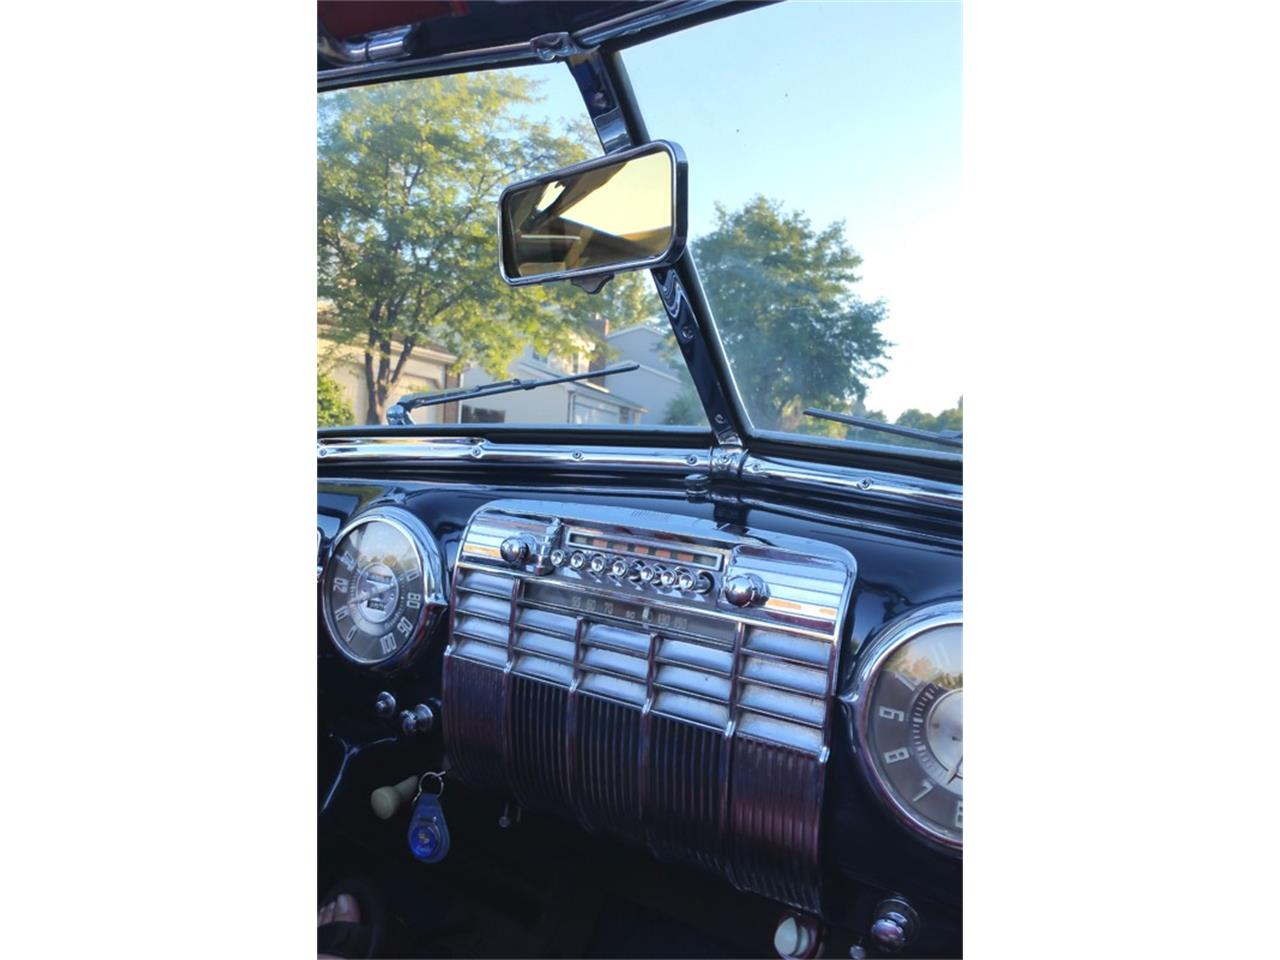 Large Picture of 1941 Cadillac Convertible located in Aurora Colorado - $78,000.00 Offered by a Private Seller - I7QF